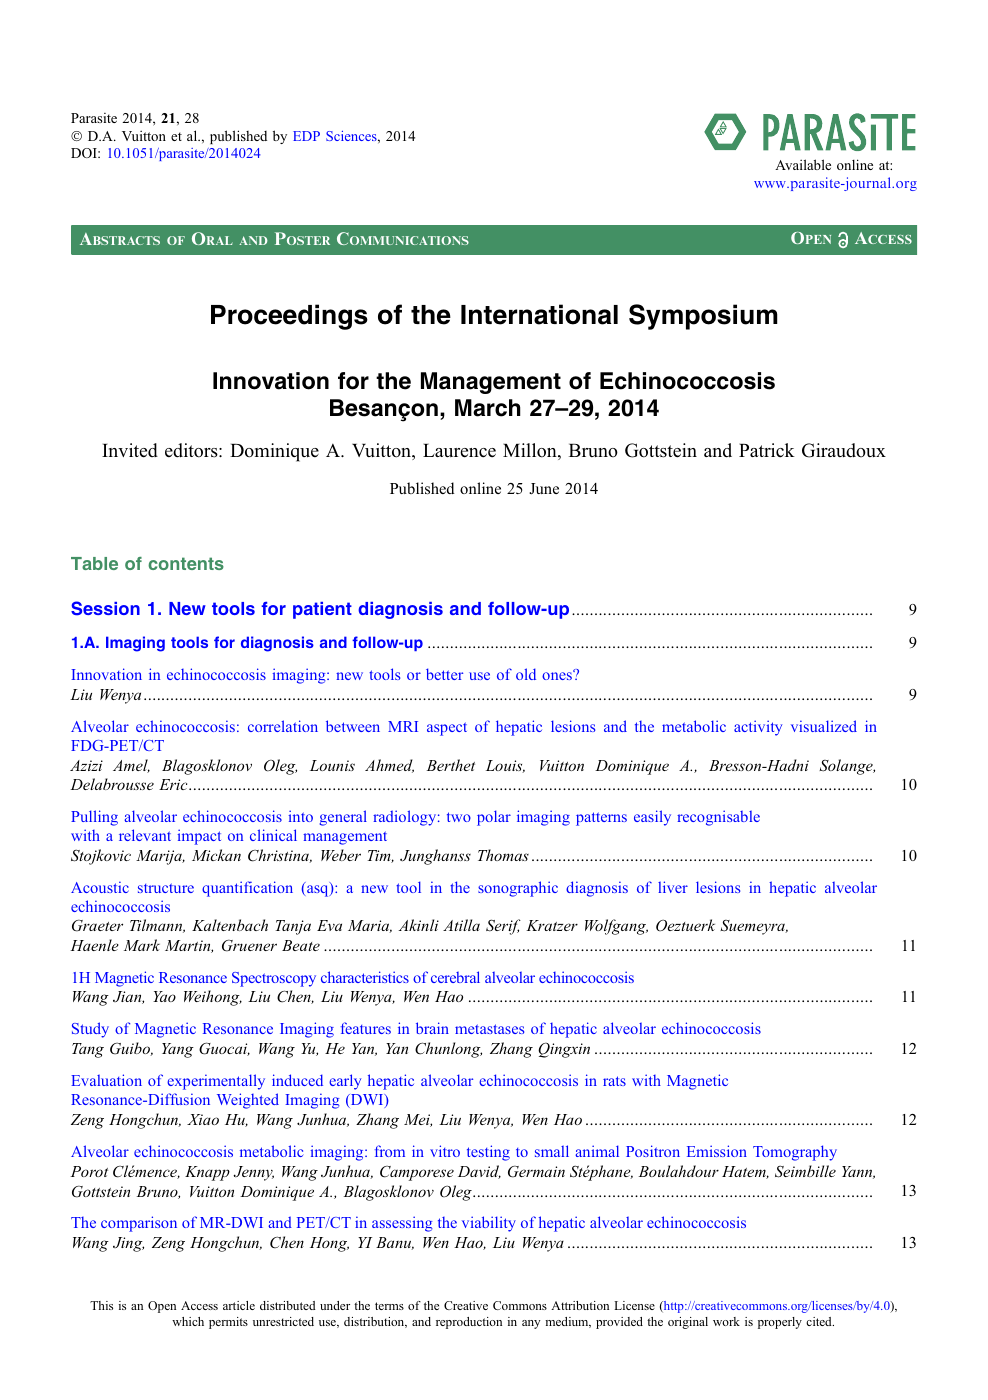 Proceedings of the International Symposium – topic of research paper